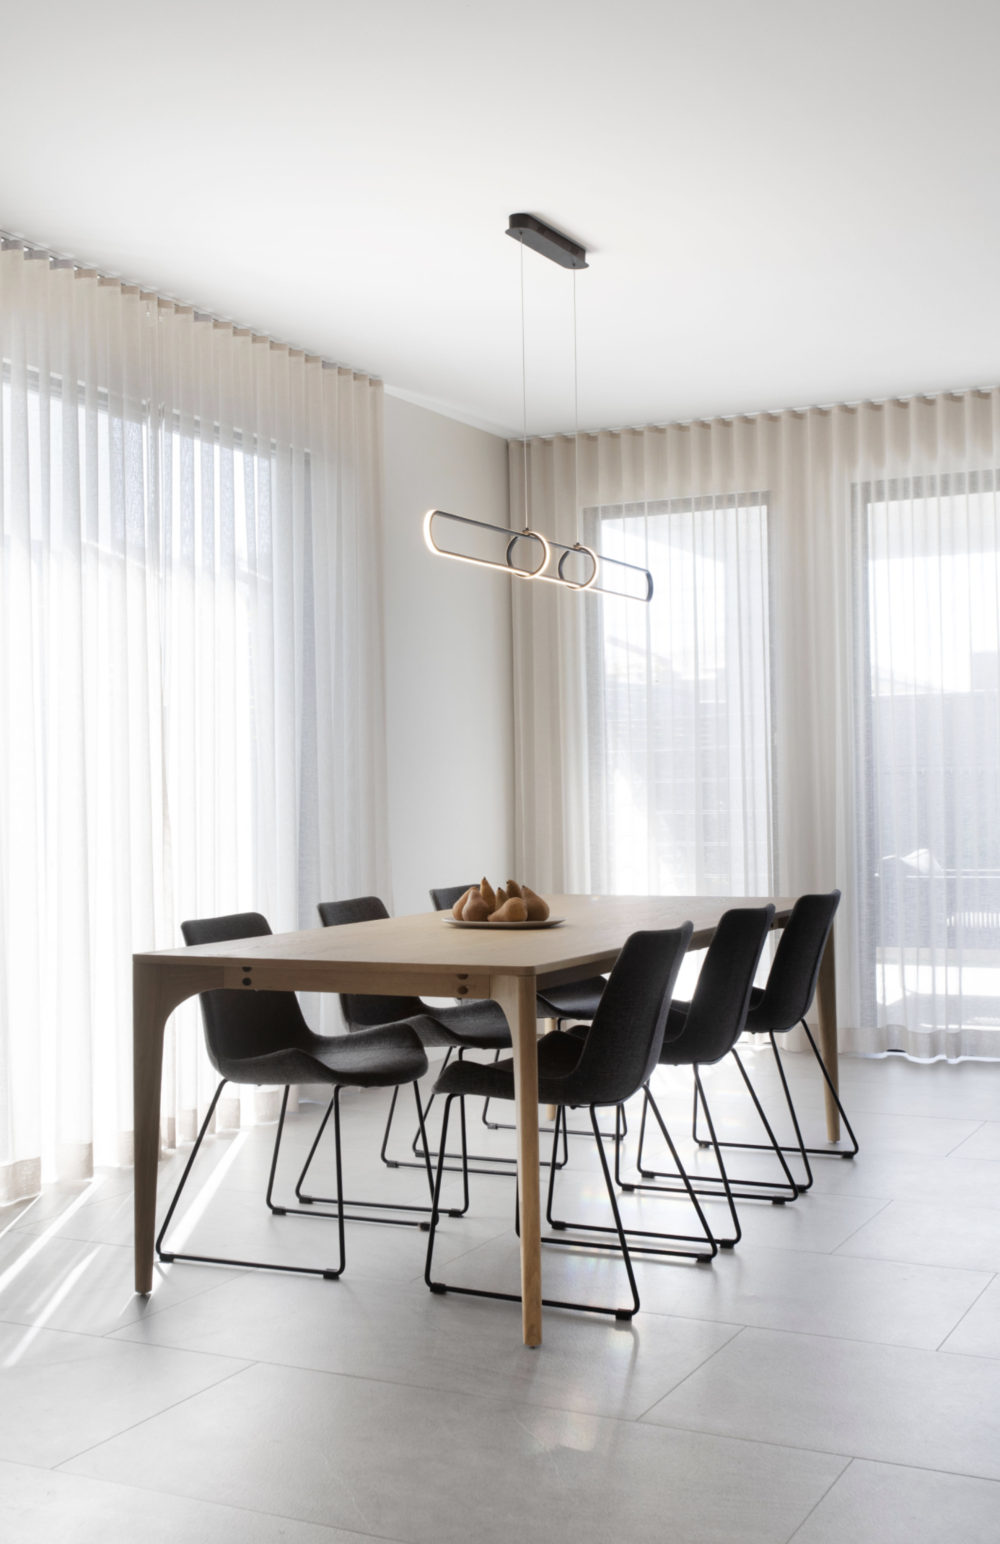 How To Choose The Perfect Dining Room Pendant Light — Zephyr + Stone